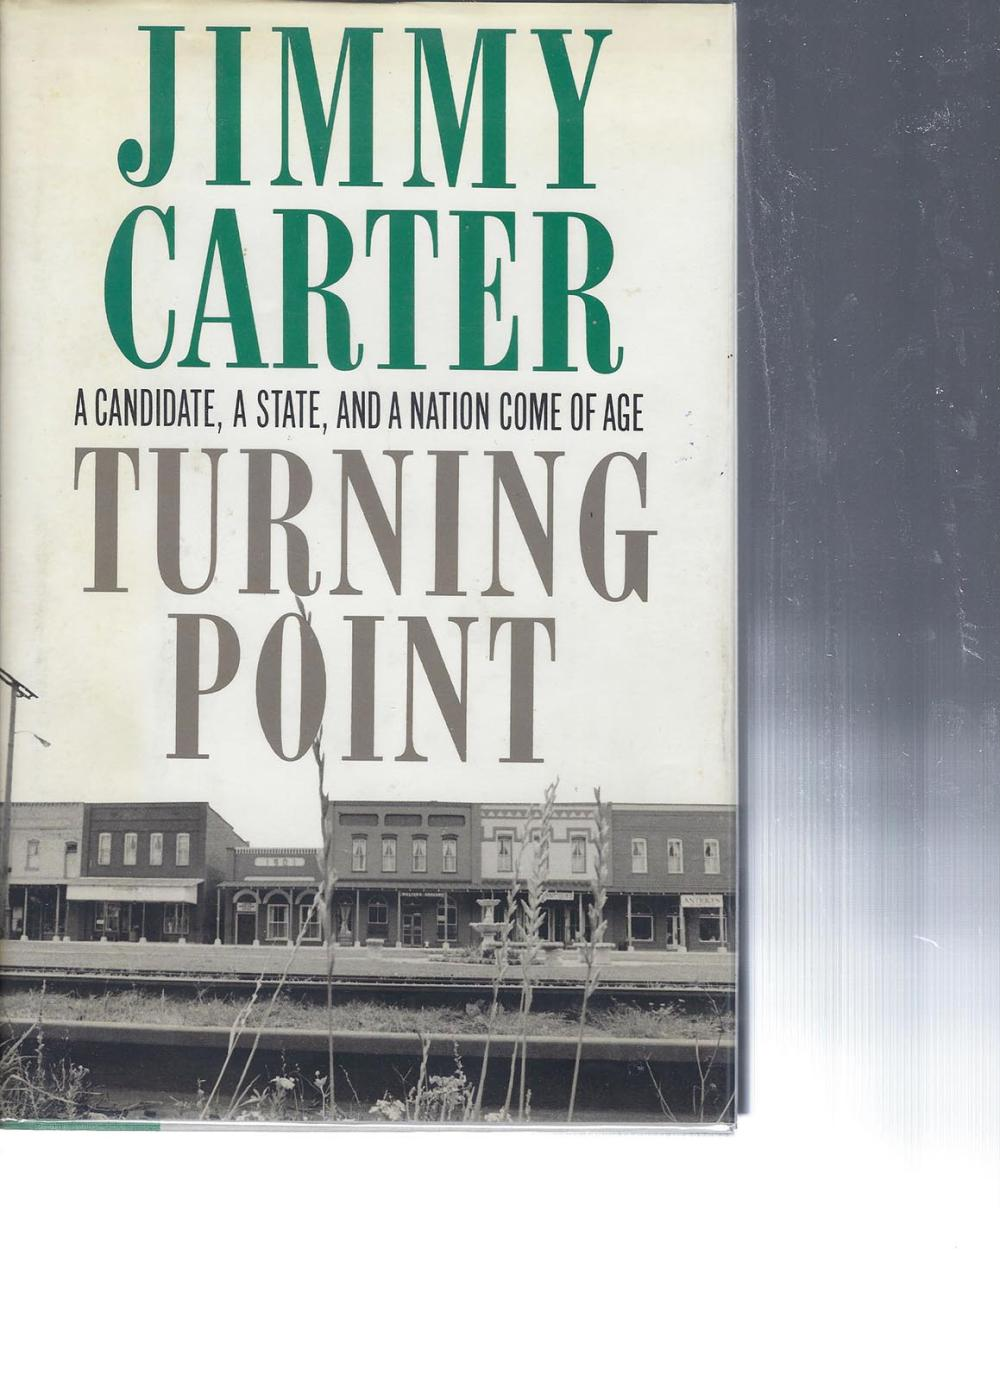 Turning Point Jimmy Carter signed book